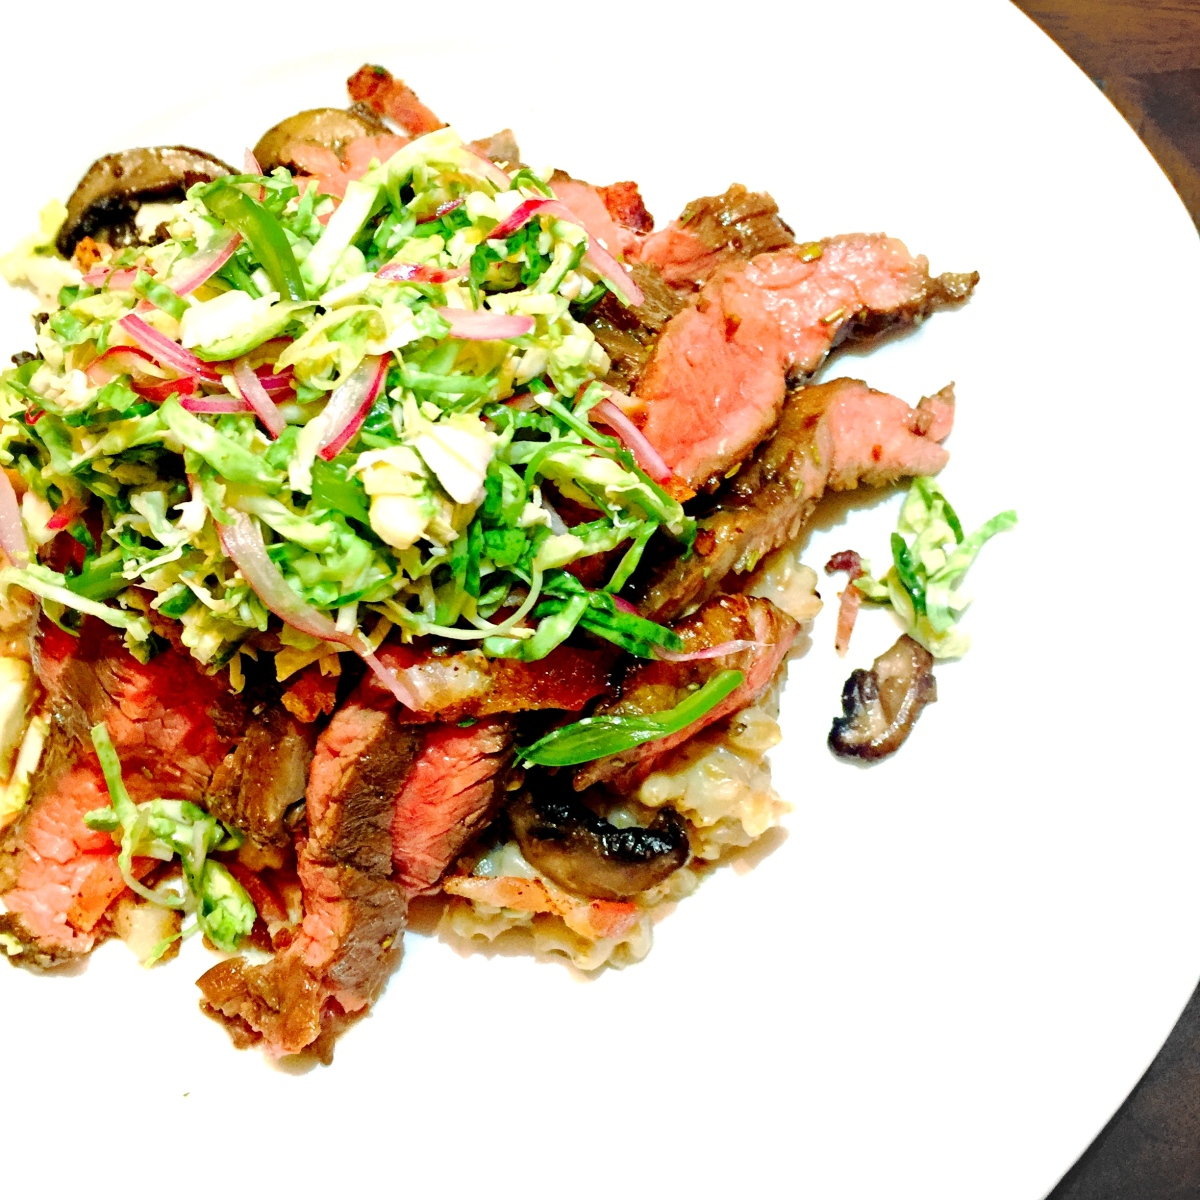 ... grilled flank steak with portobello mushrooms grilled flank steak with